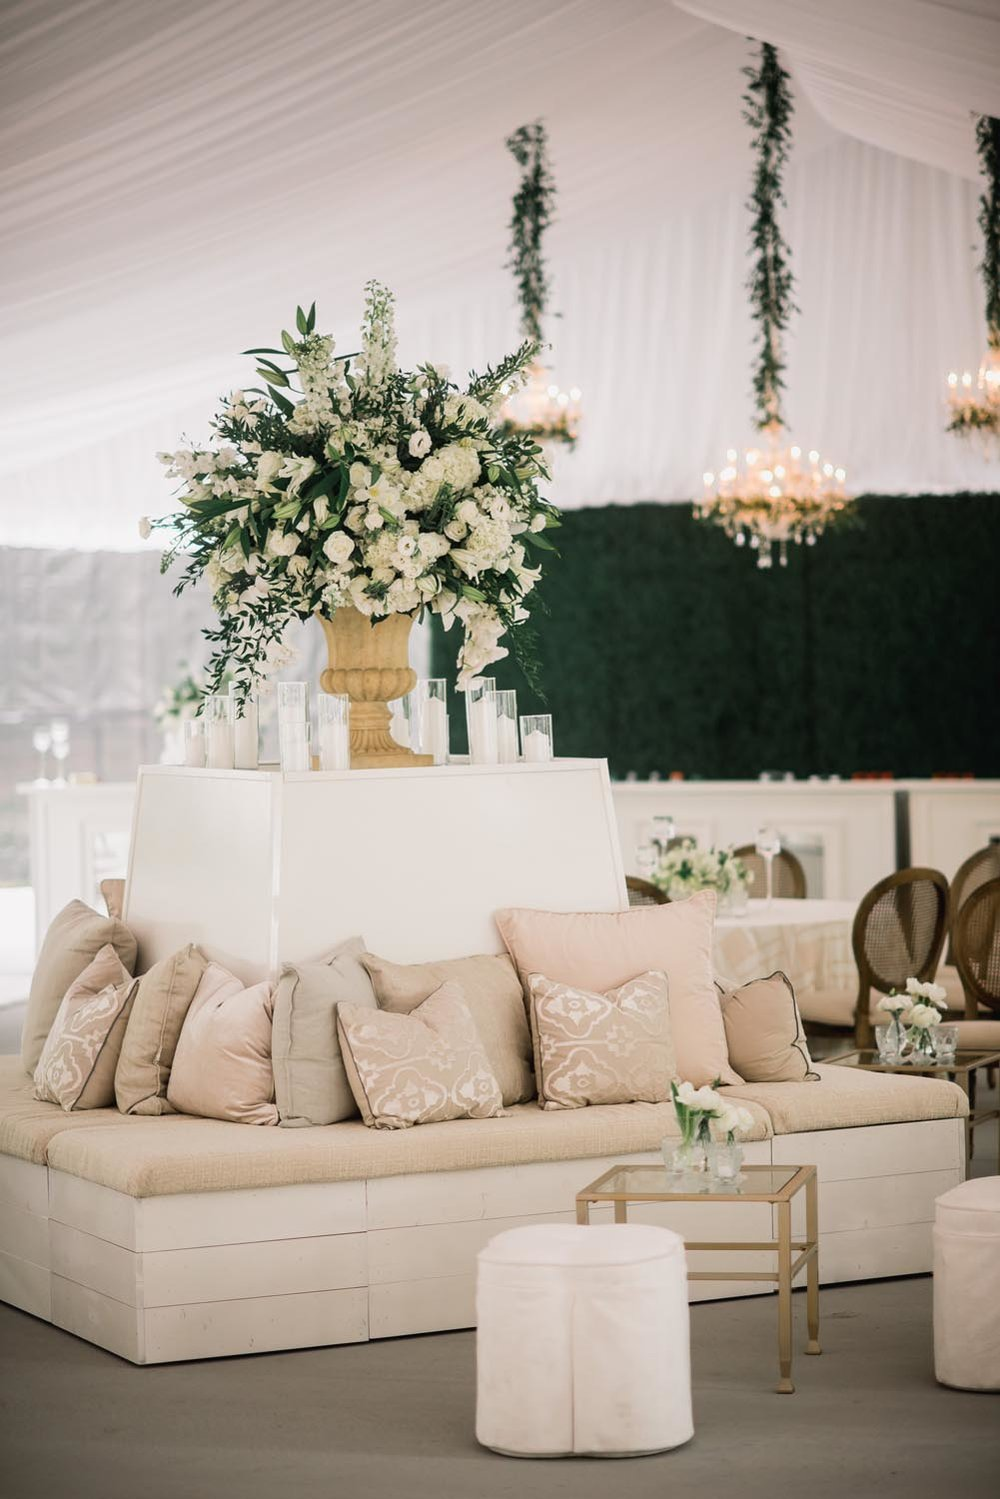 Cream lounge area wedding design. Wedding planning and design by A Charleston Bride.